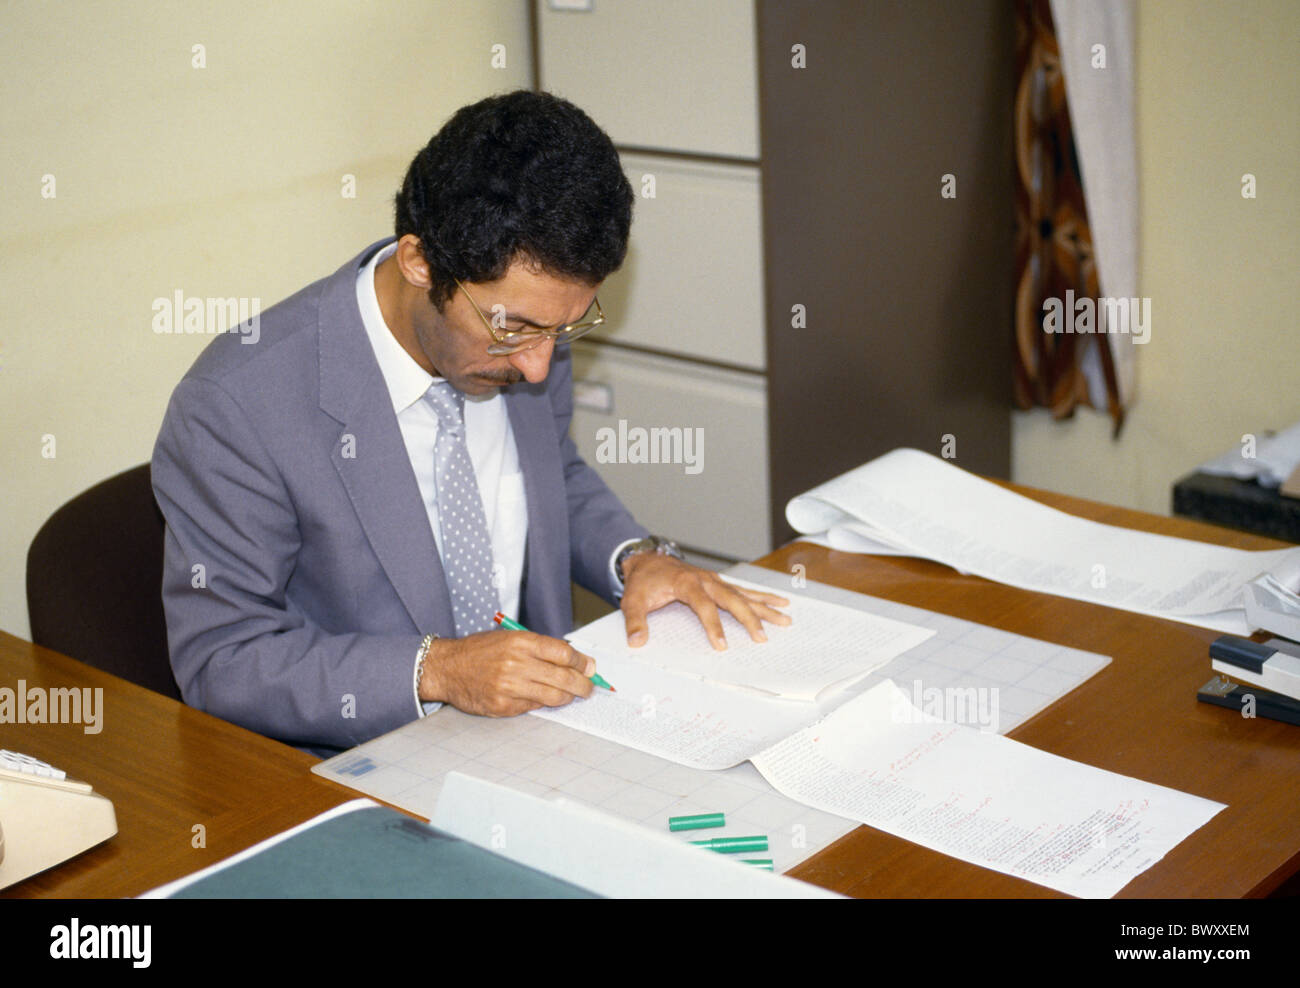 Egyptian Proof Reading Arabic Manuscript Inside Office Signing Papers - Stock Image